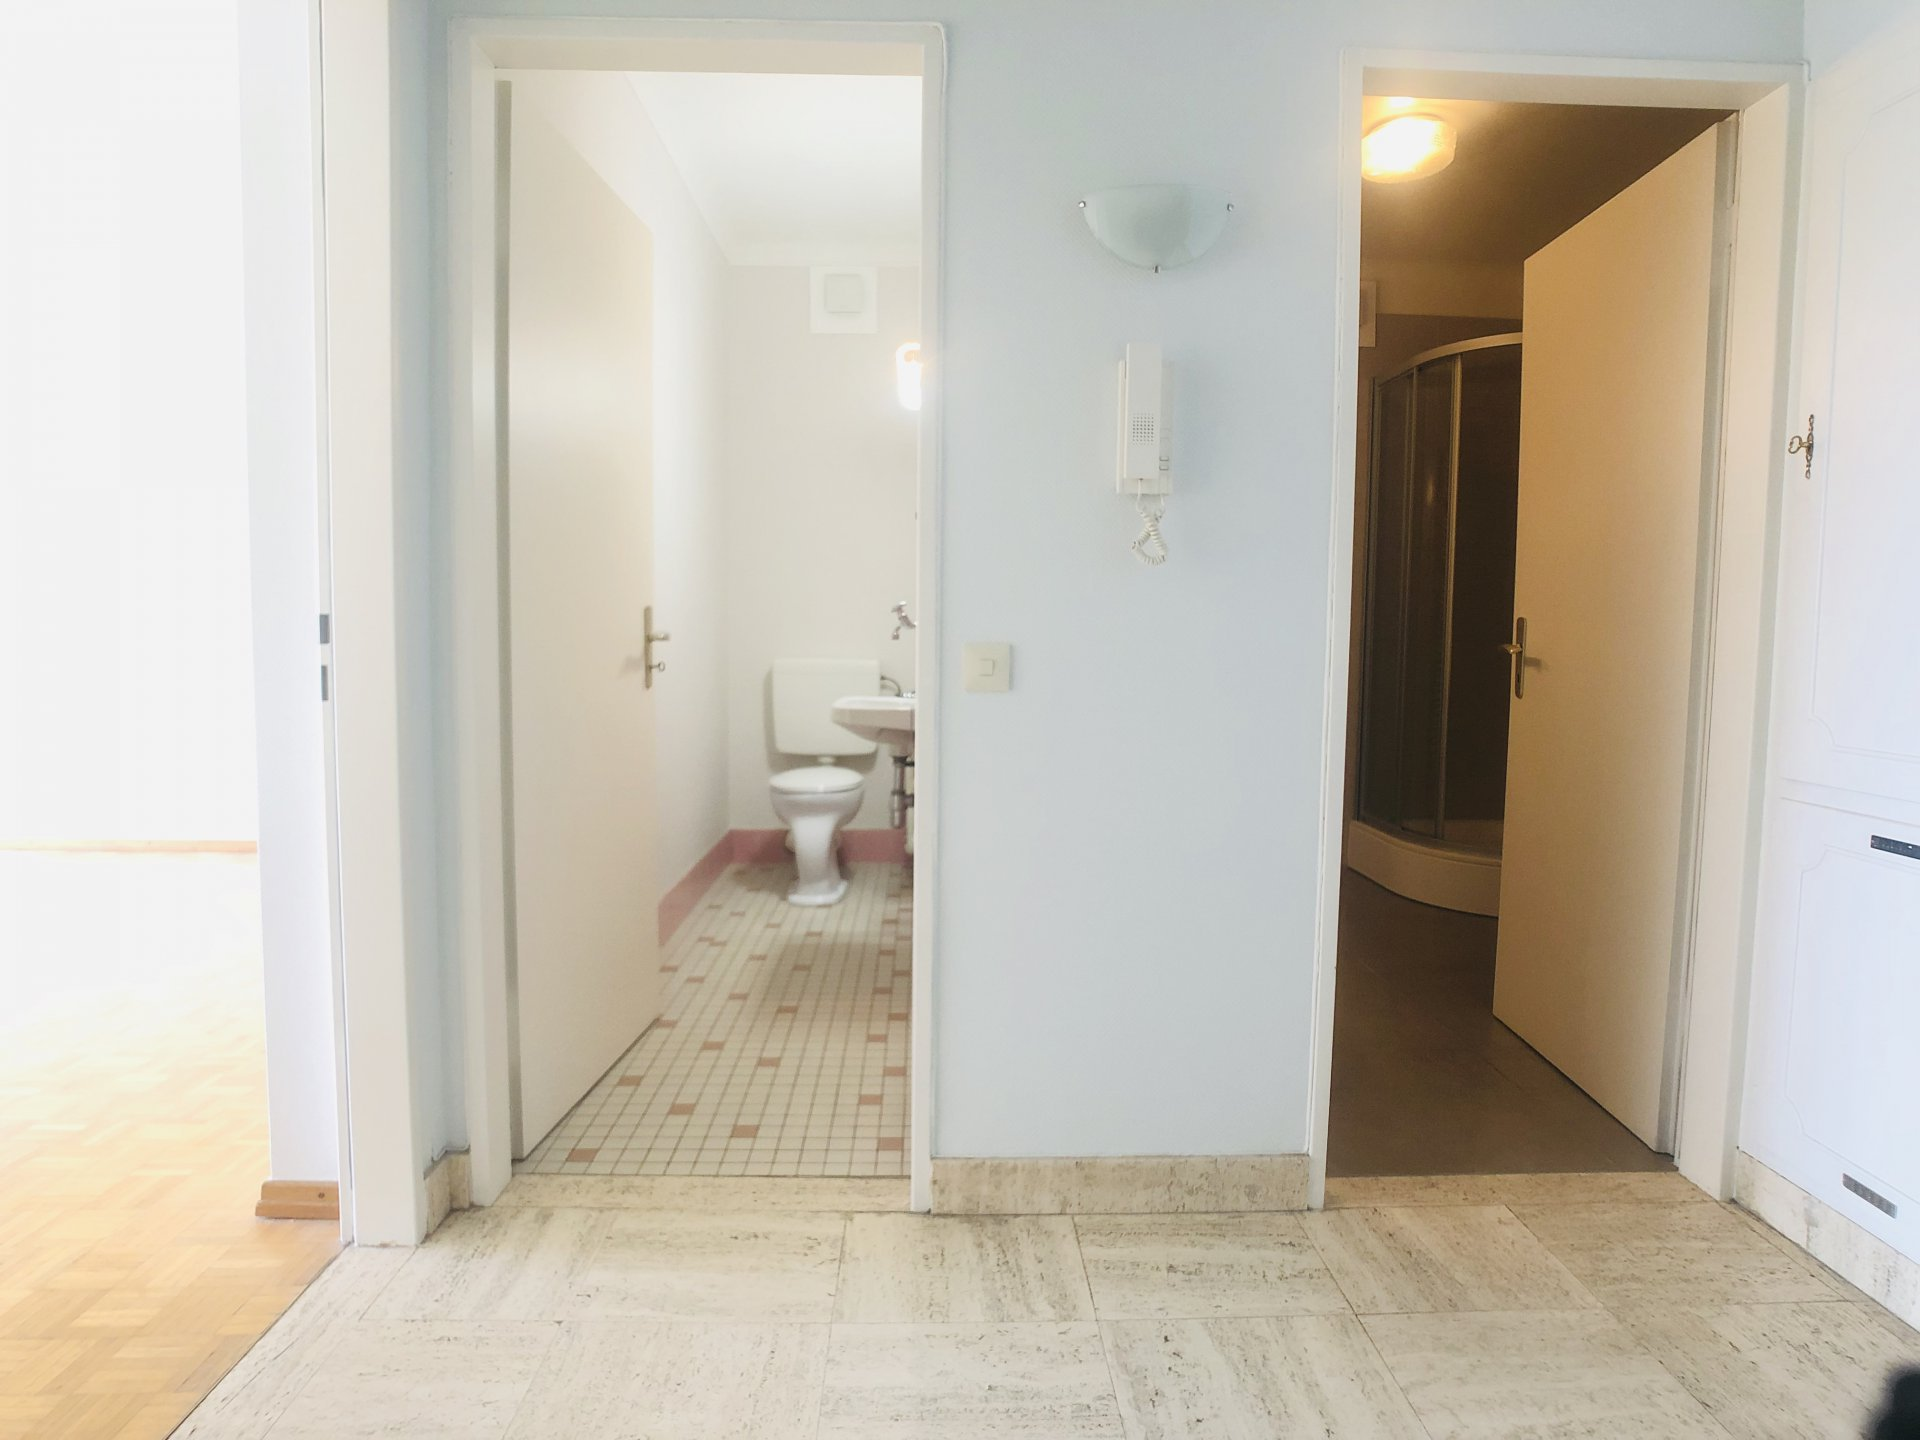 Location Appartement - Luxembourg - Luxembourg